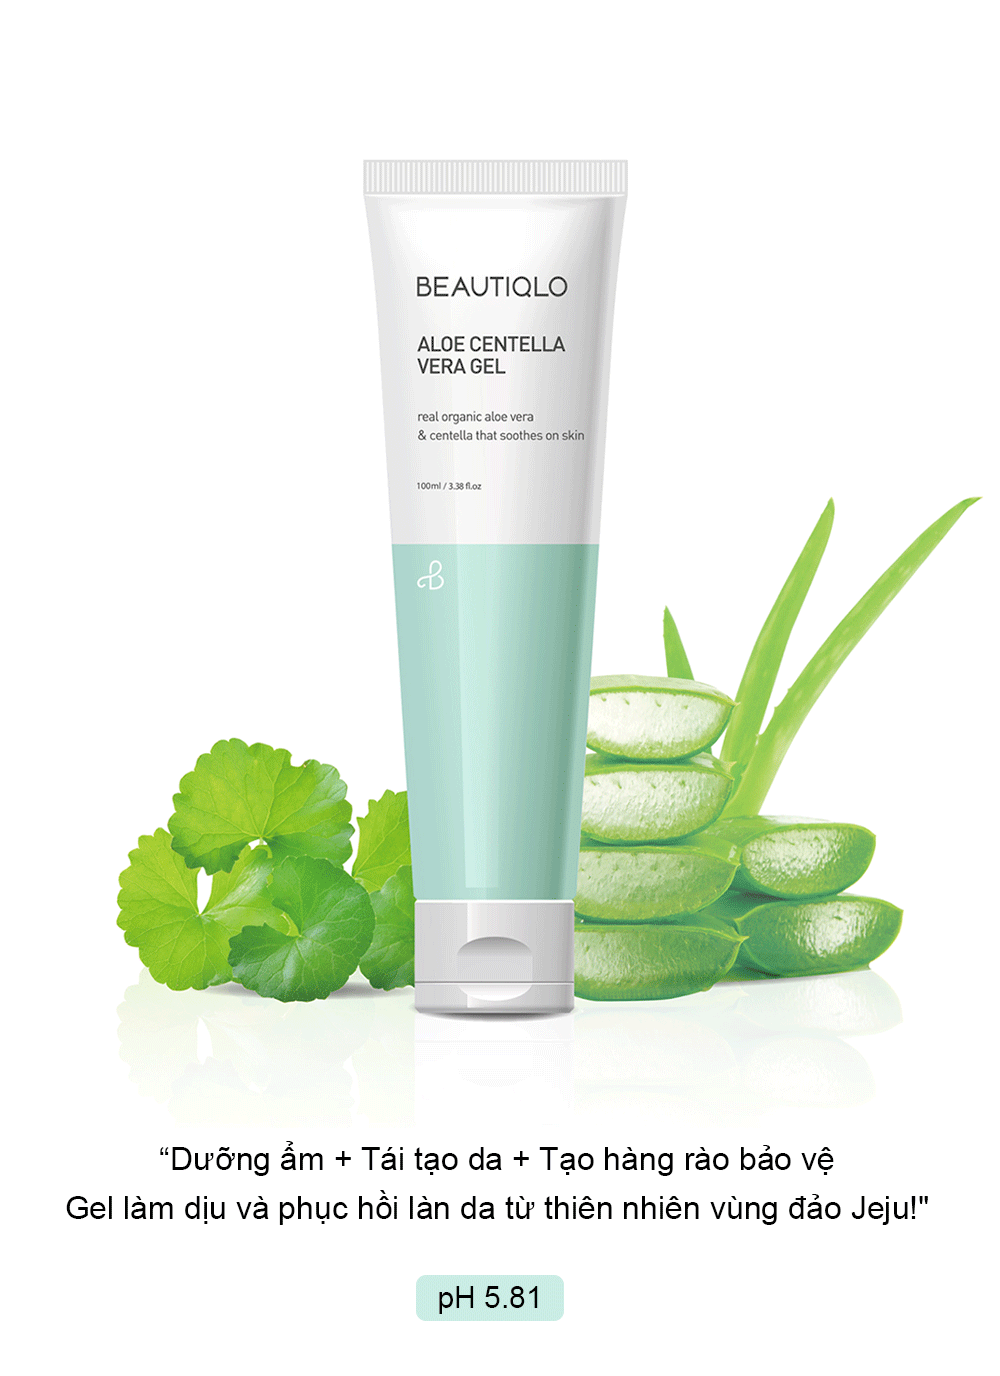 aloe-centella-vera-gel-my-pham-huu-co-beautiqlo-background-2